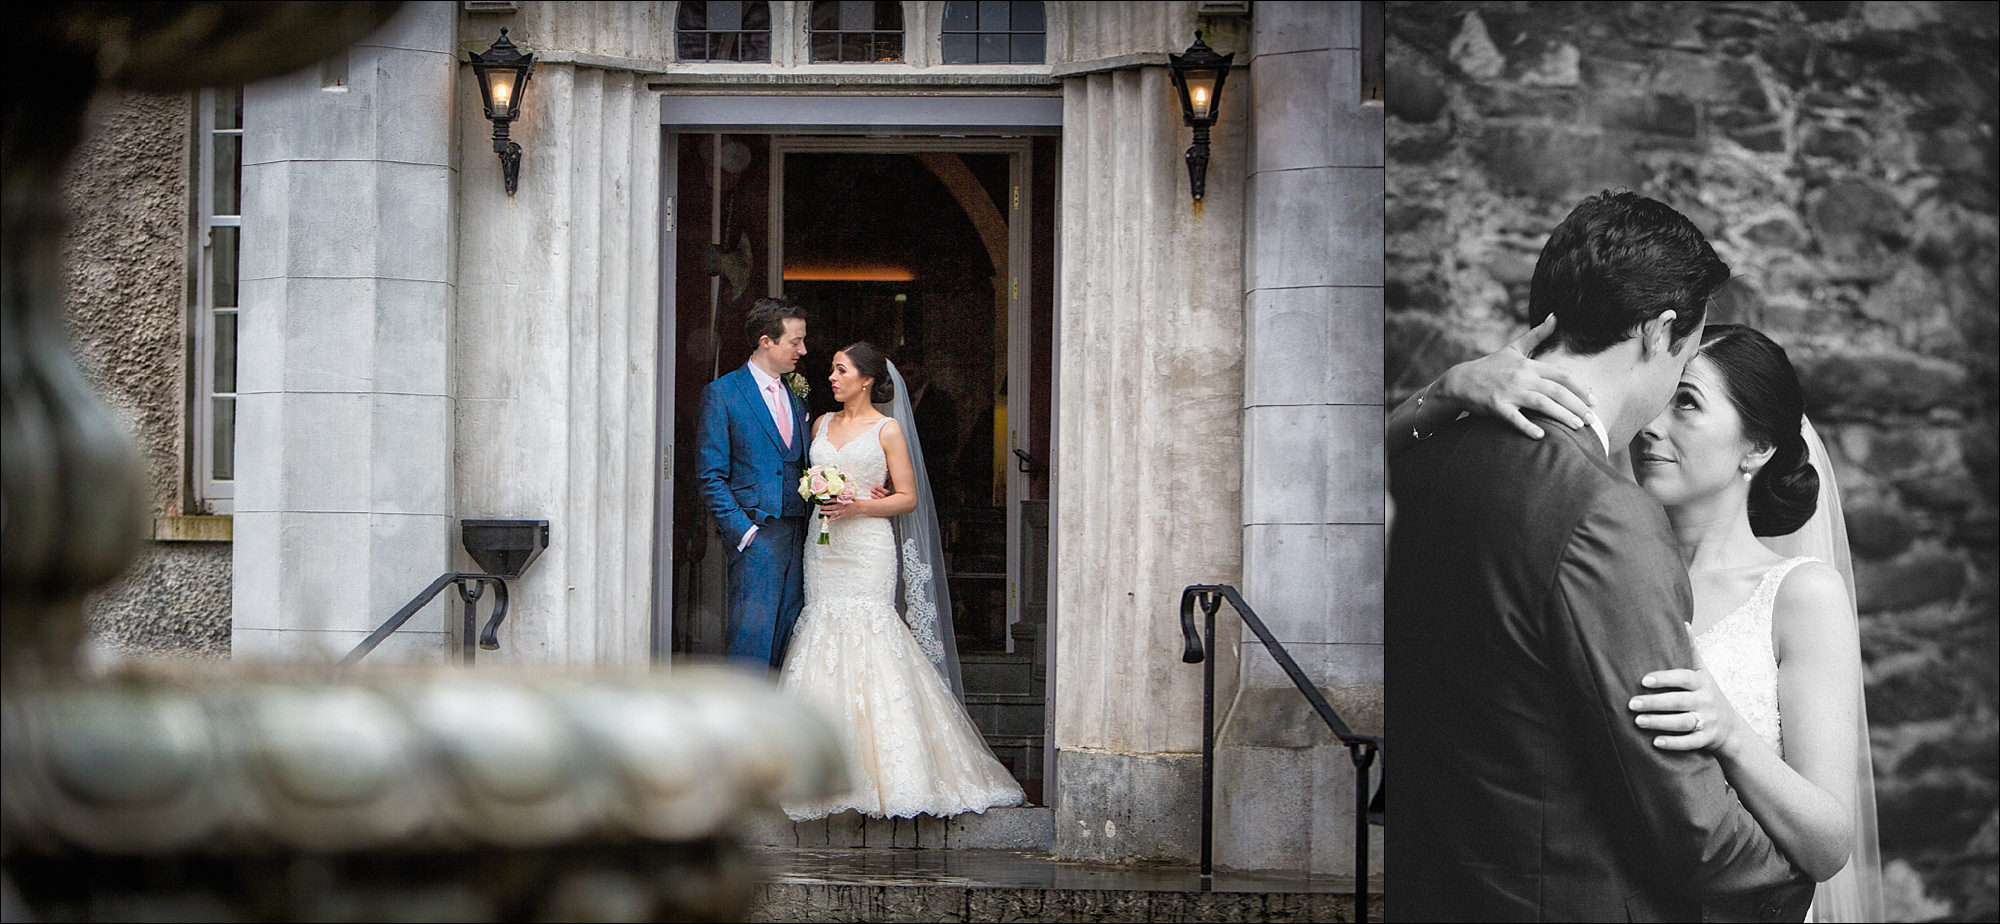 dublin wedding photographer david duignan photography bellingham castle weddings Ireland 0057